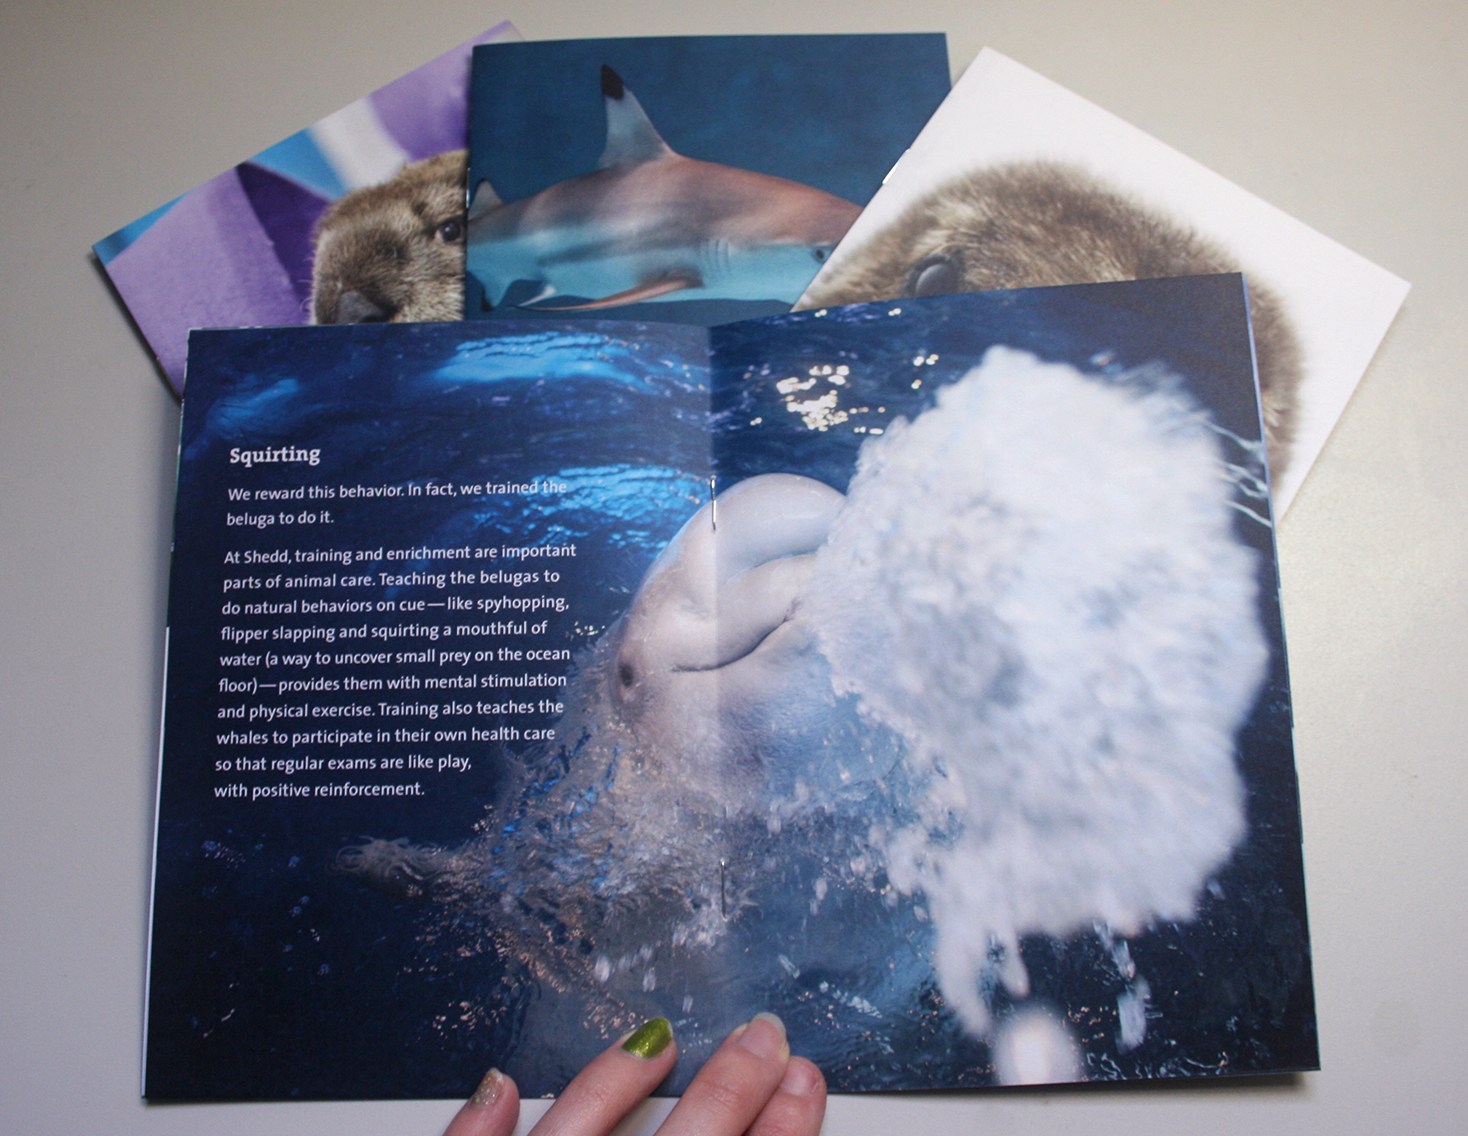 A booklet is shown open to a full-spread image of a beluga whale spitting water at the camera. Information about this behavior is overlaid on the left side of the photo.